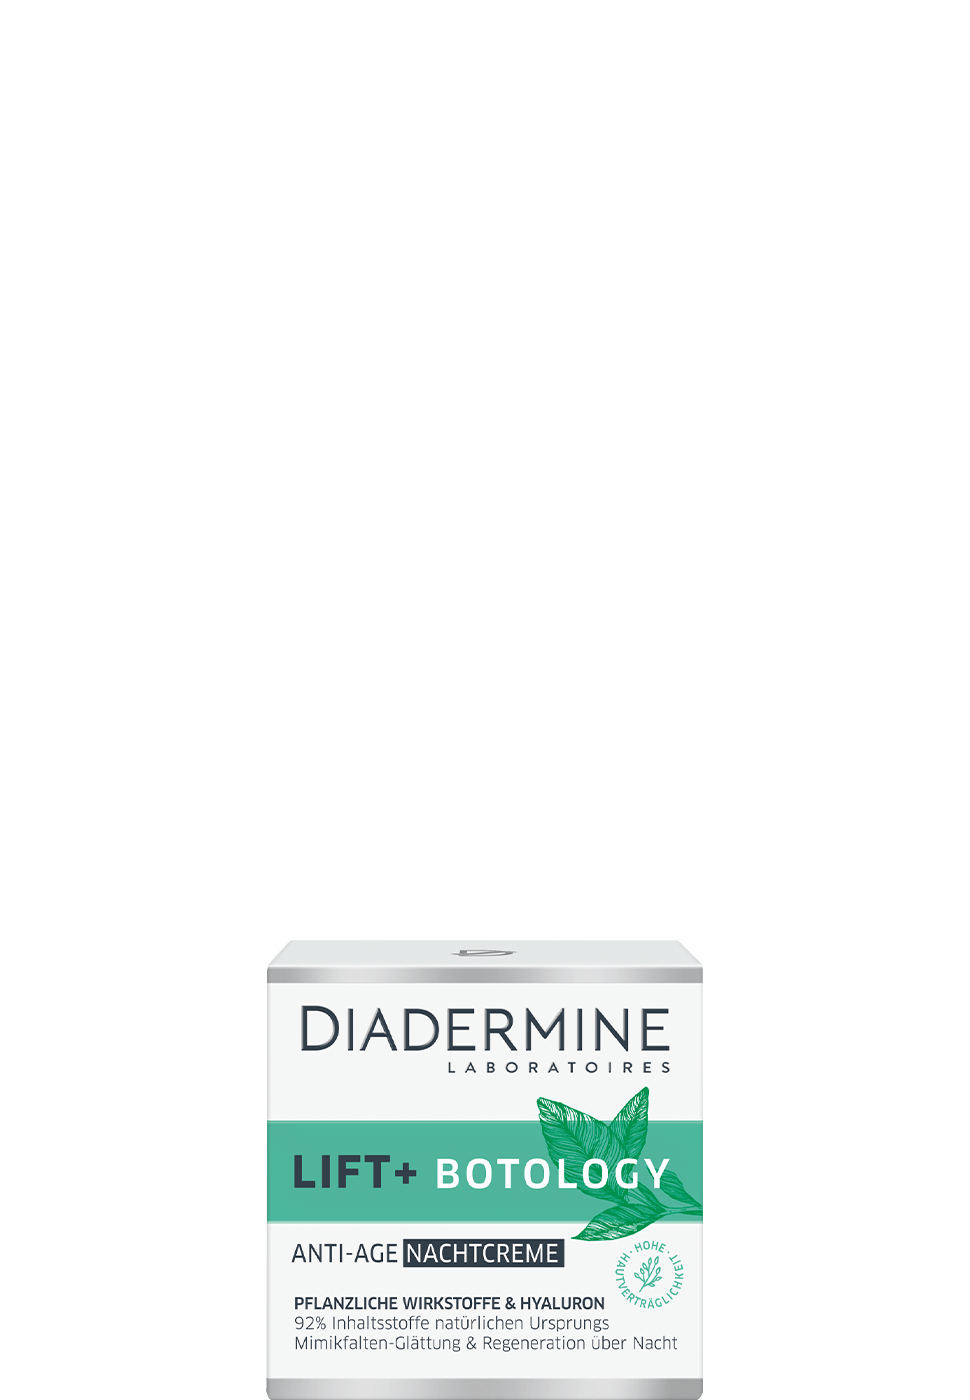 diadermine_de_lift_plus_botology_nachtcreme_970x1400